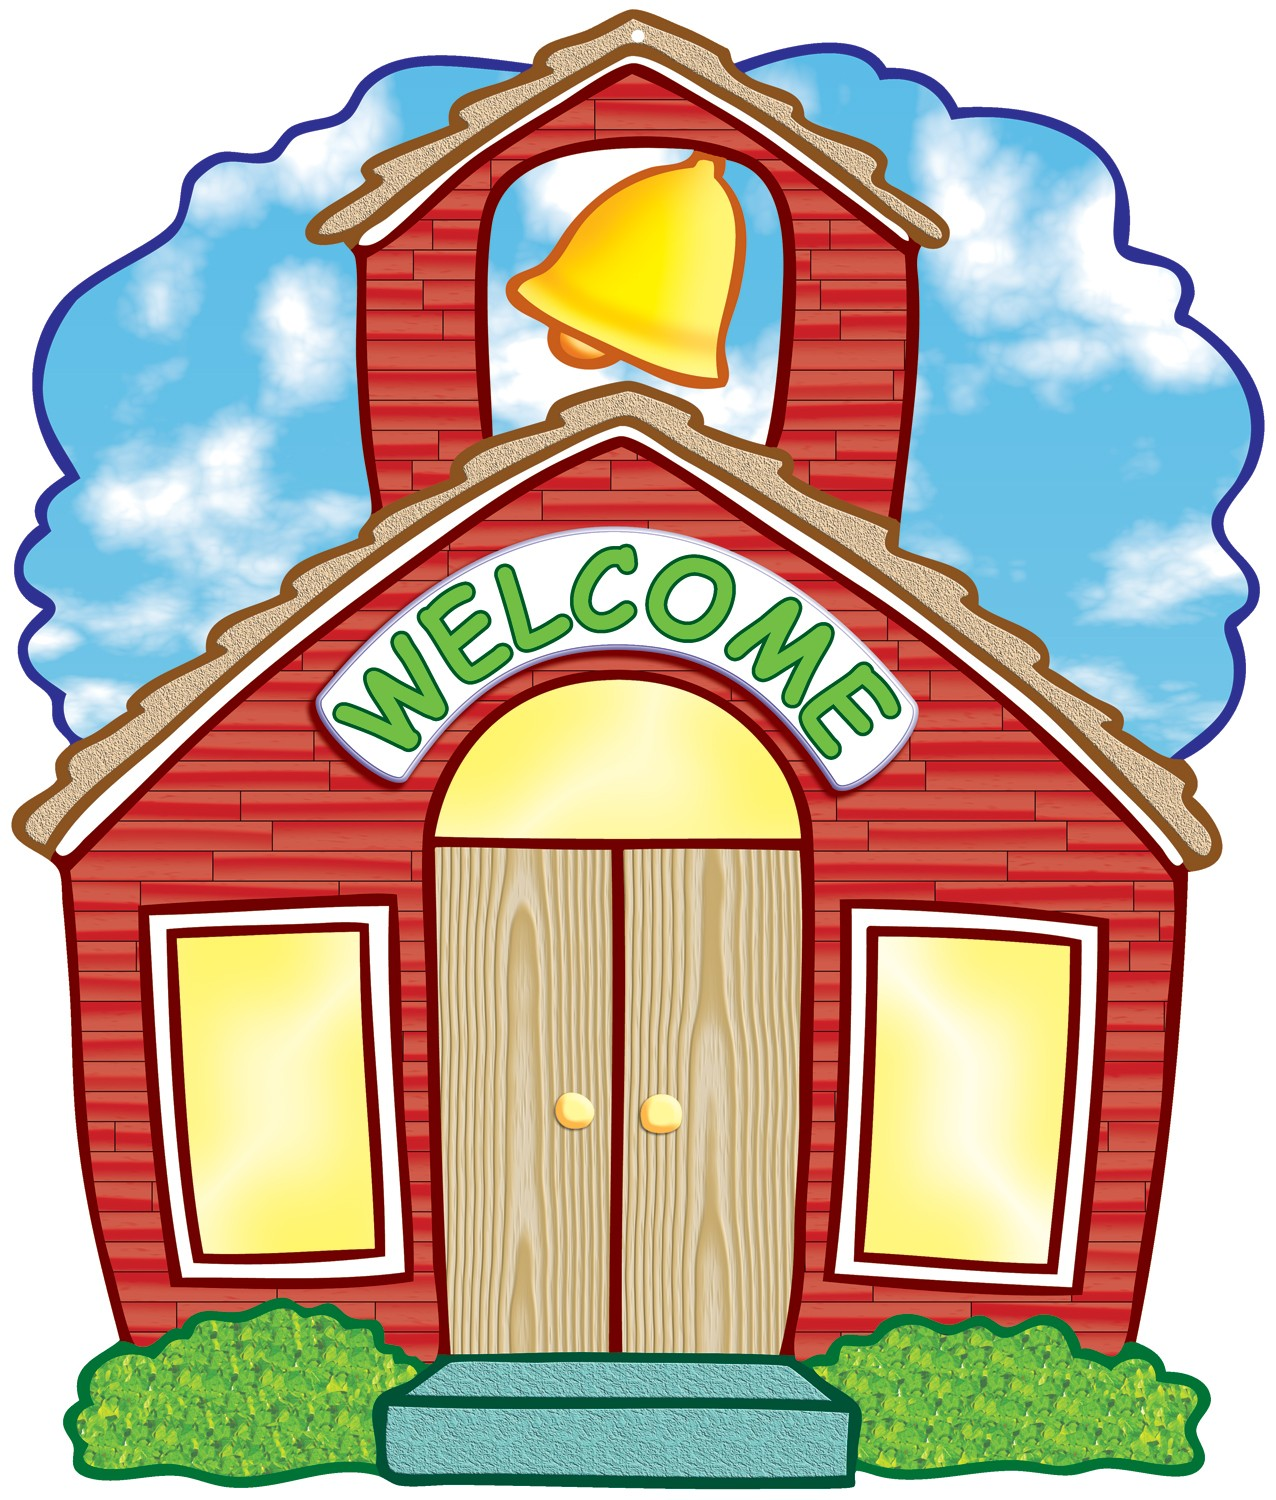 School house download clip. Free schoolhouse clipart